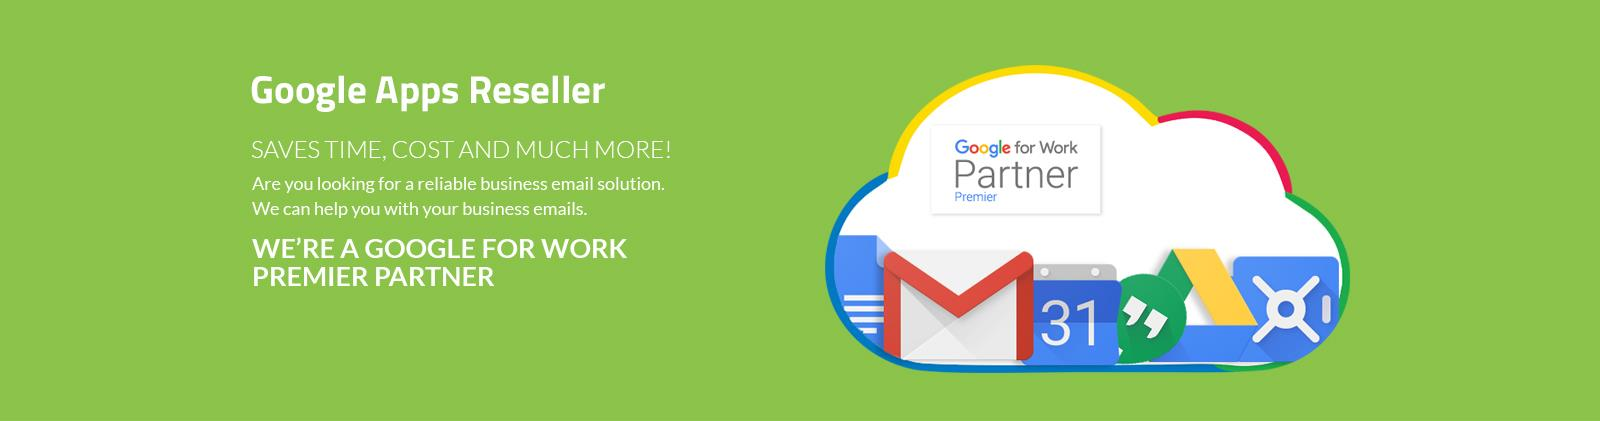 Google For Work, the organization gets more customized email addresses, calendar, Mobile email and IM access. No additional software or hardware is required to access it. It's default spam filtering is considered to be the leading filter in - by 300 OFF! Google Apps for Work Partner +91 7503131644, Delhi